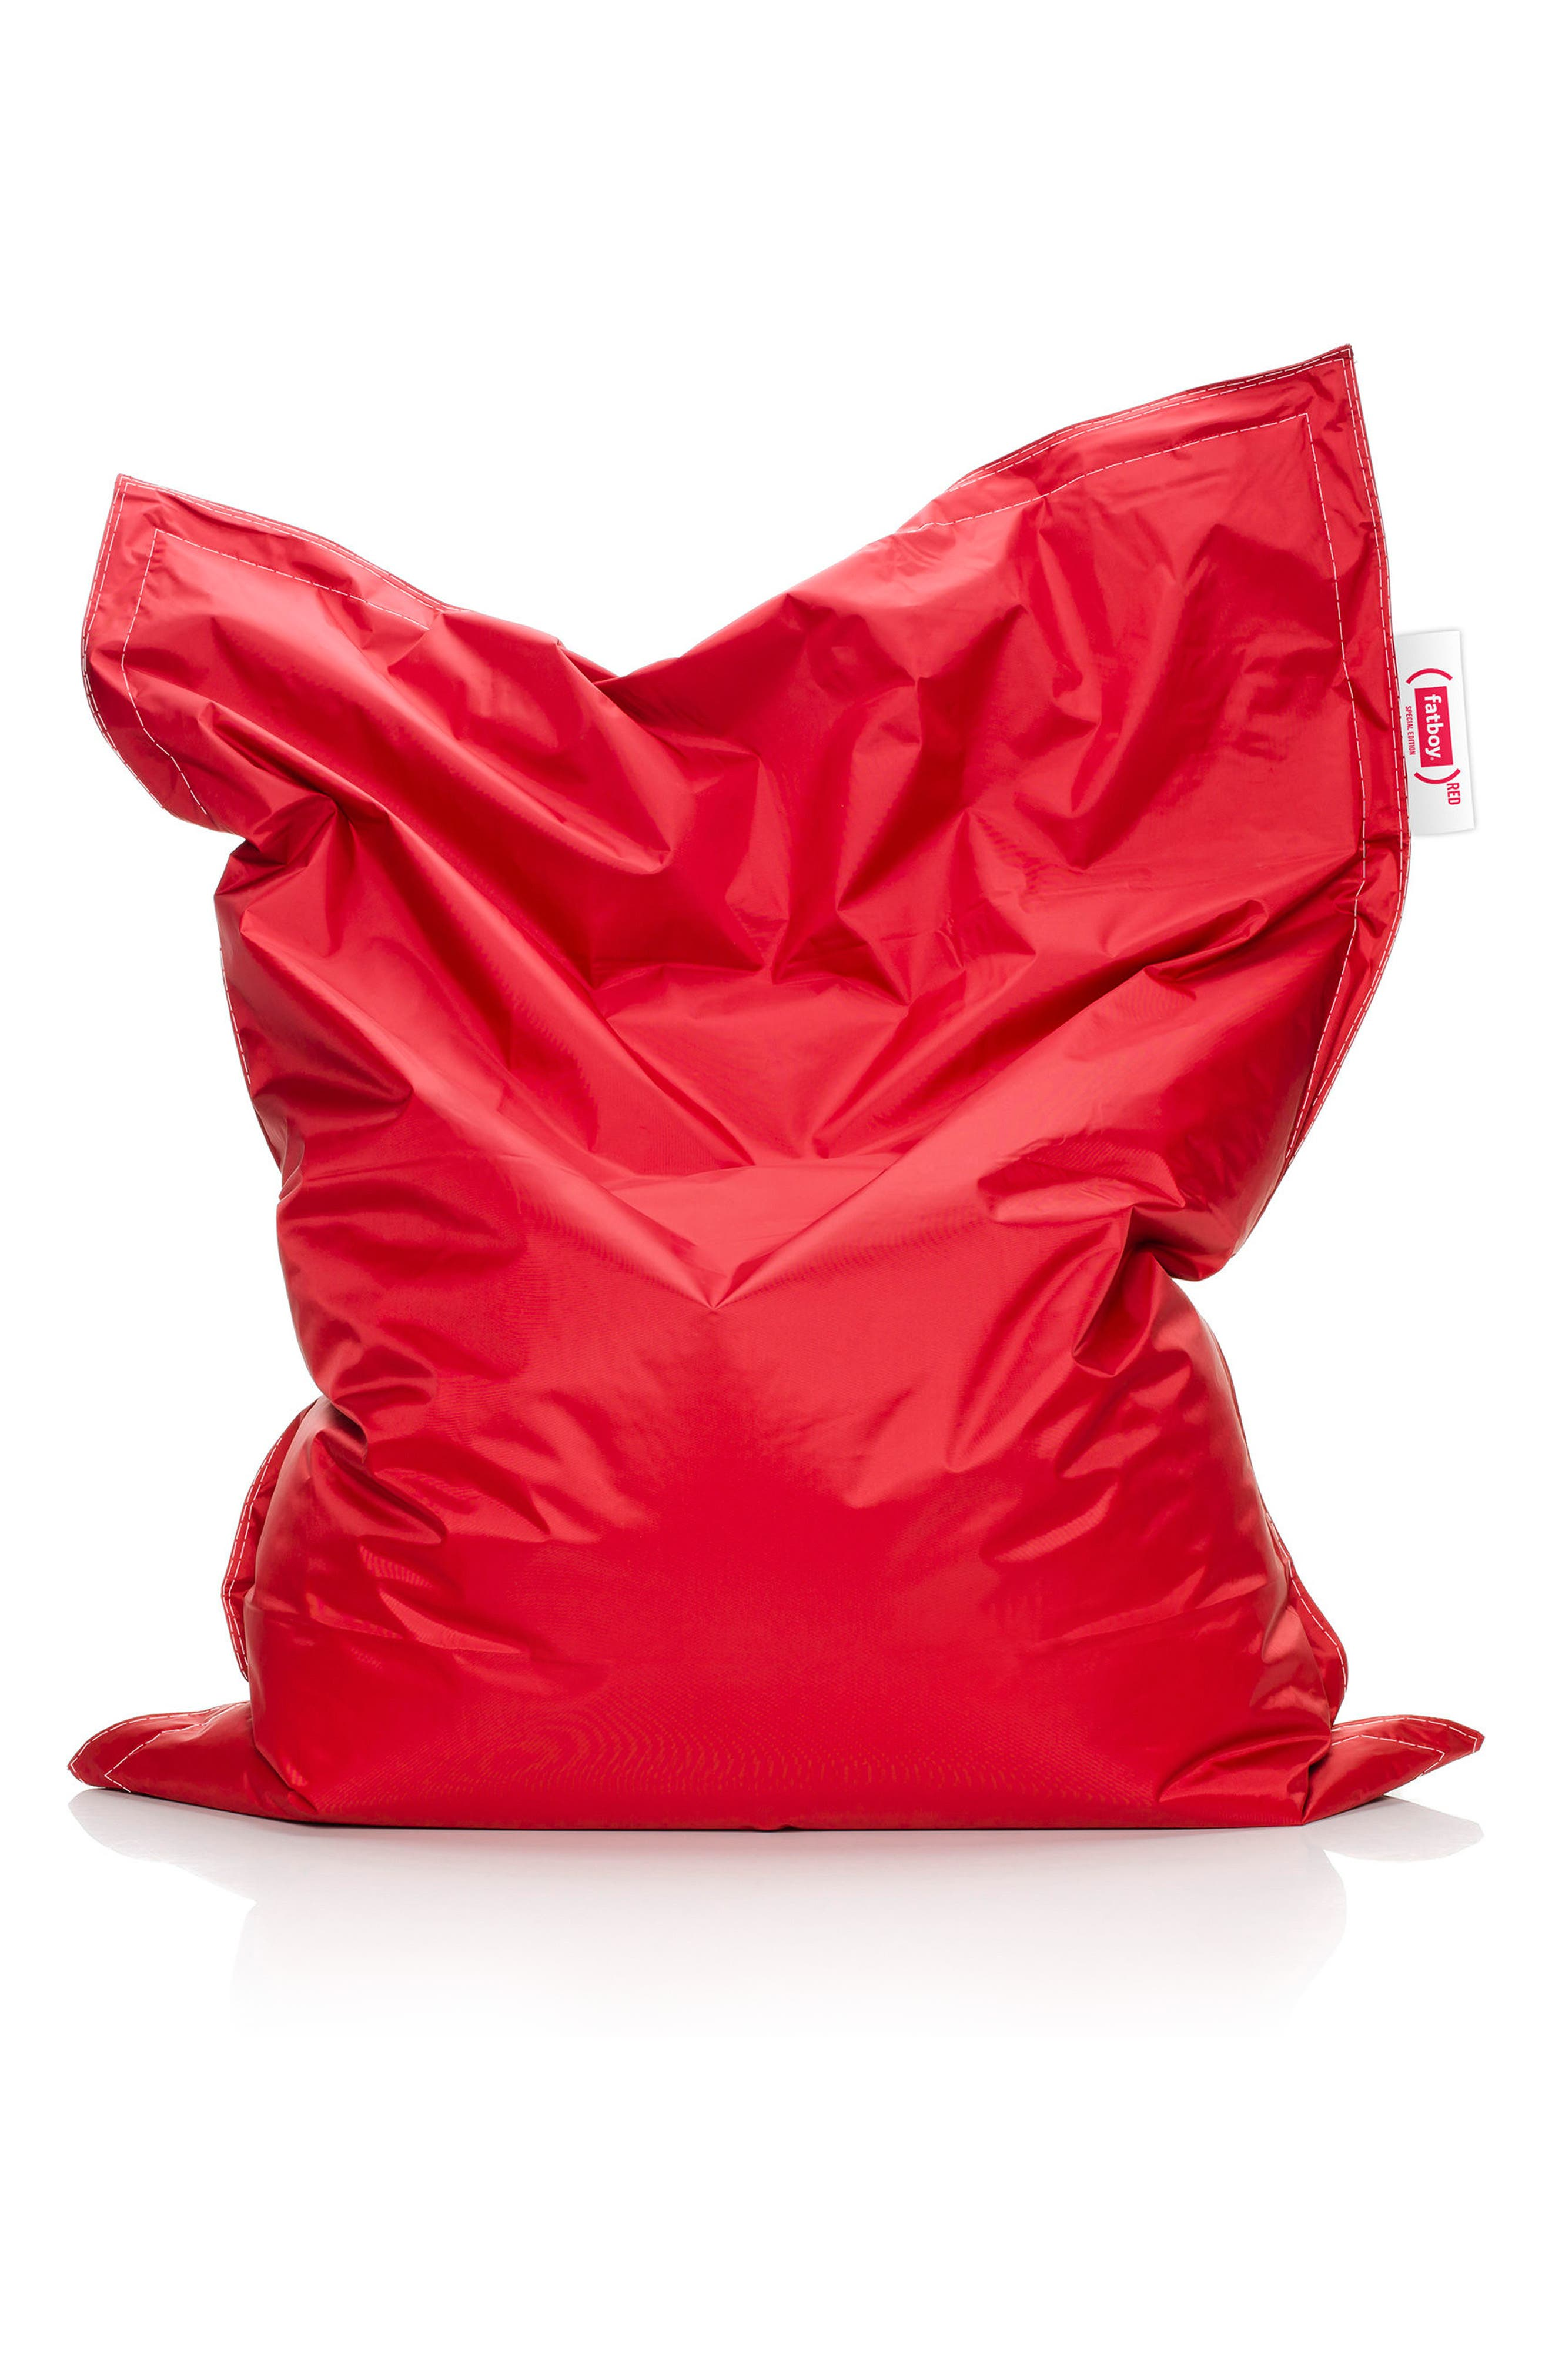 Junior RED Special Edition Beanbag Chair,                         Main,                         color, Red